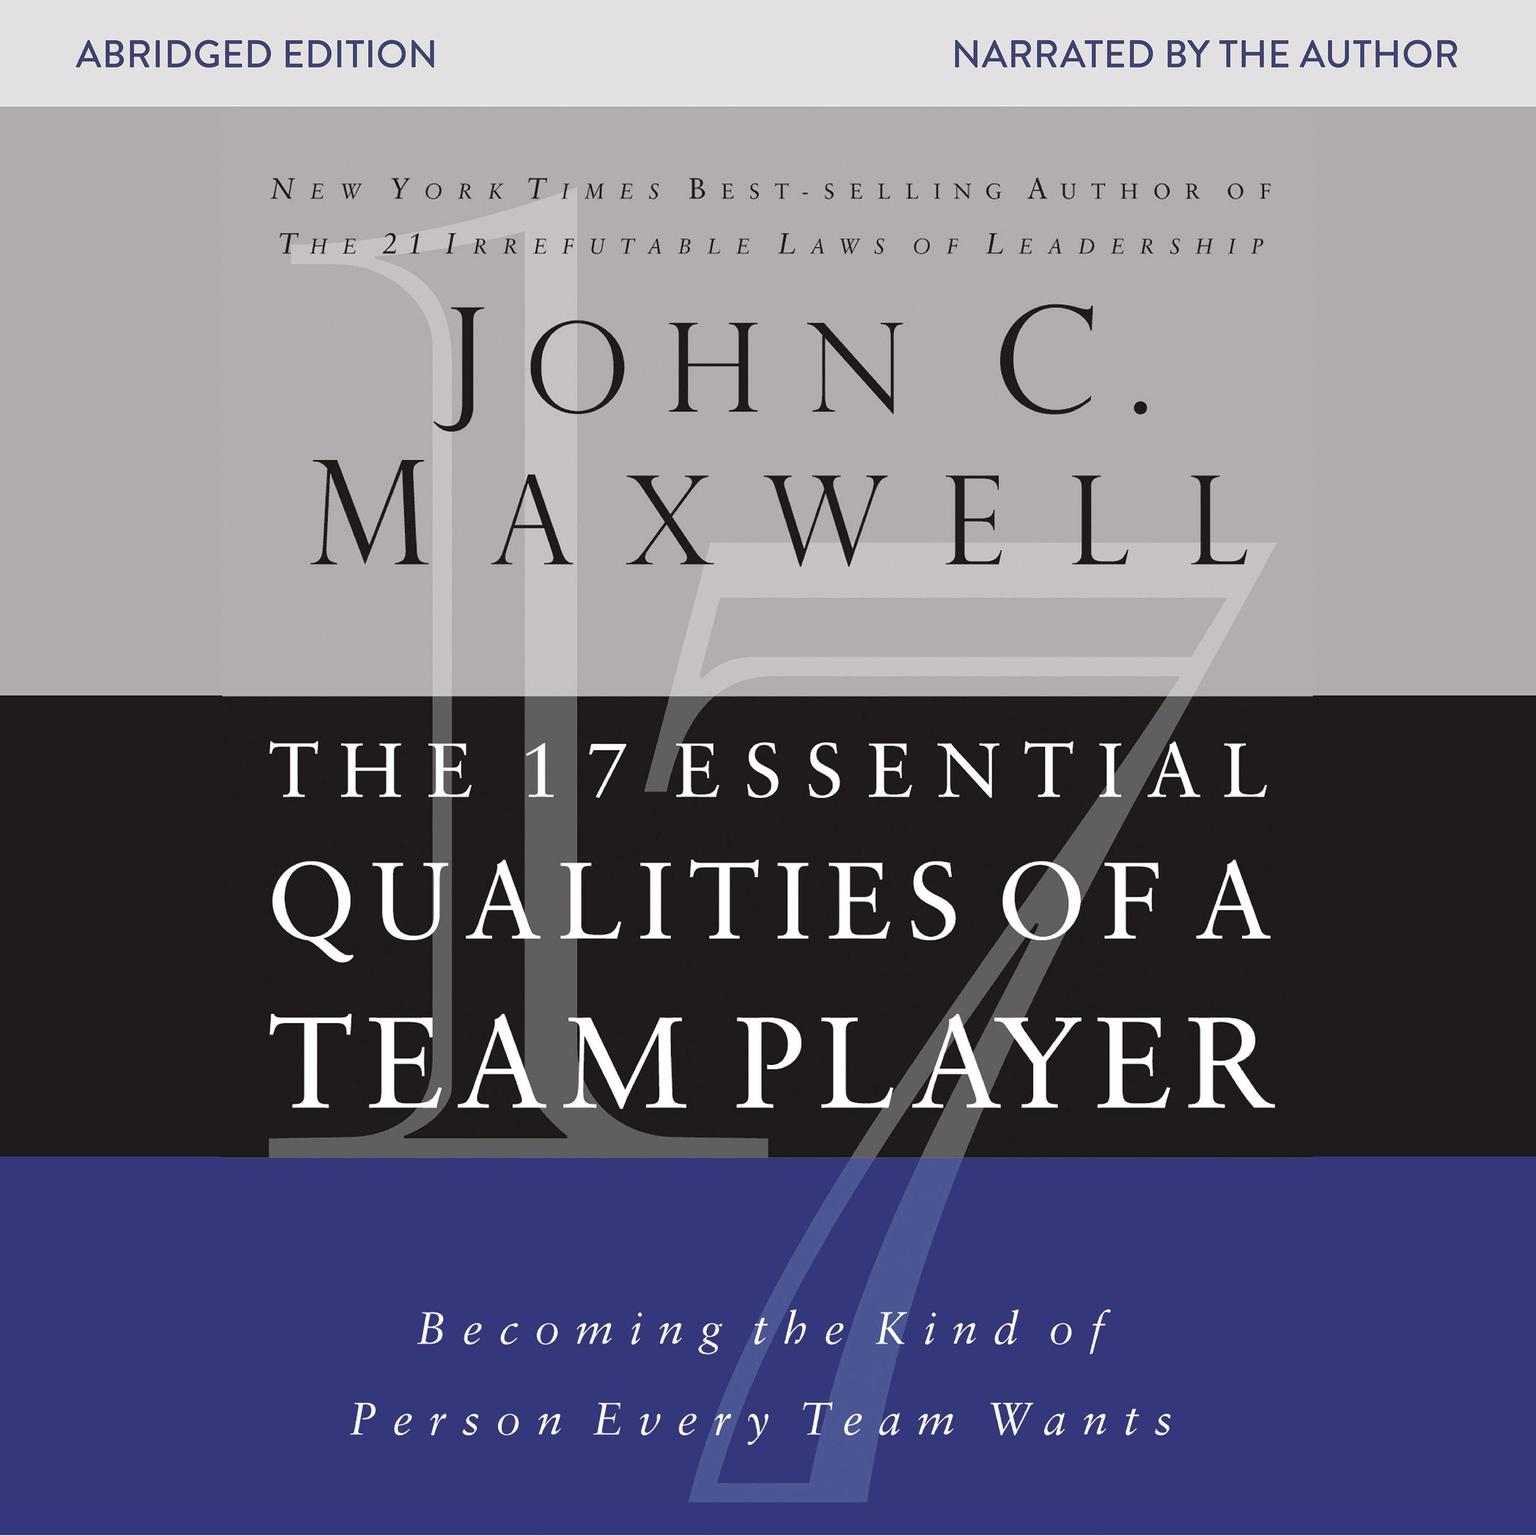 Printable The 17 Essential Qualities of a Team Player (Abridged): Becoming the Kind of Person Every Team Wants Audiobook Cover Art